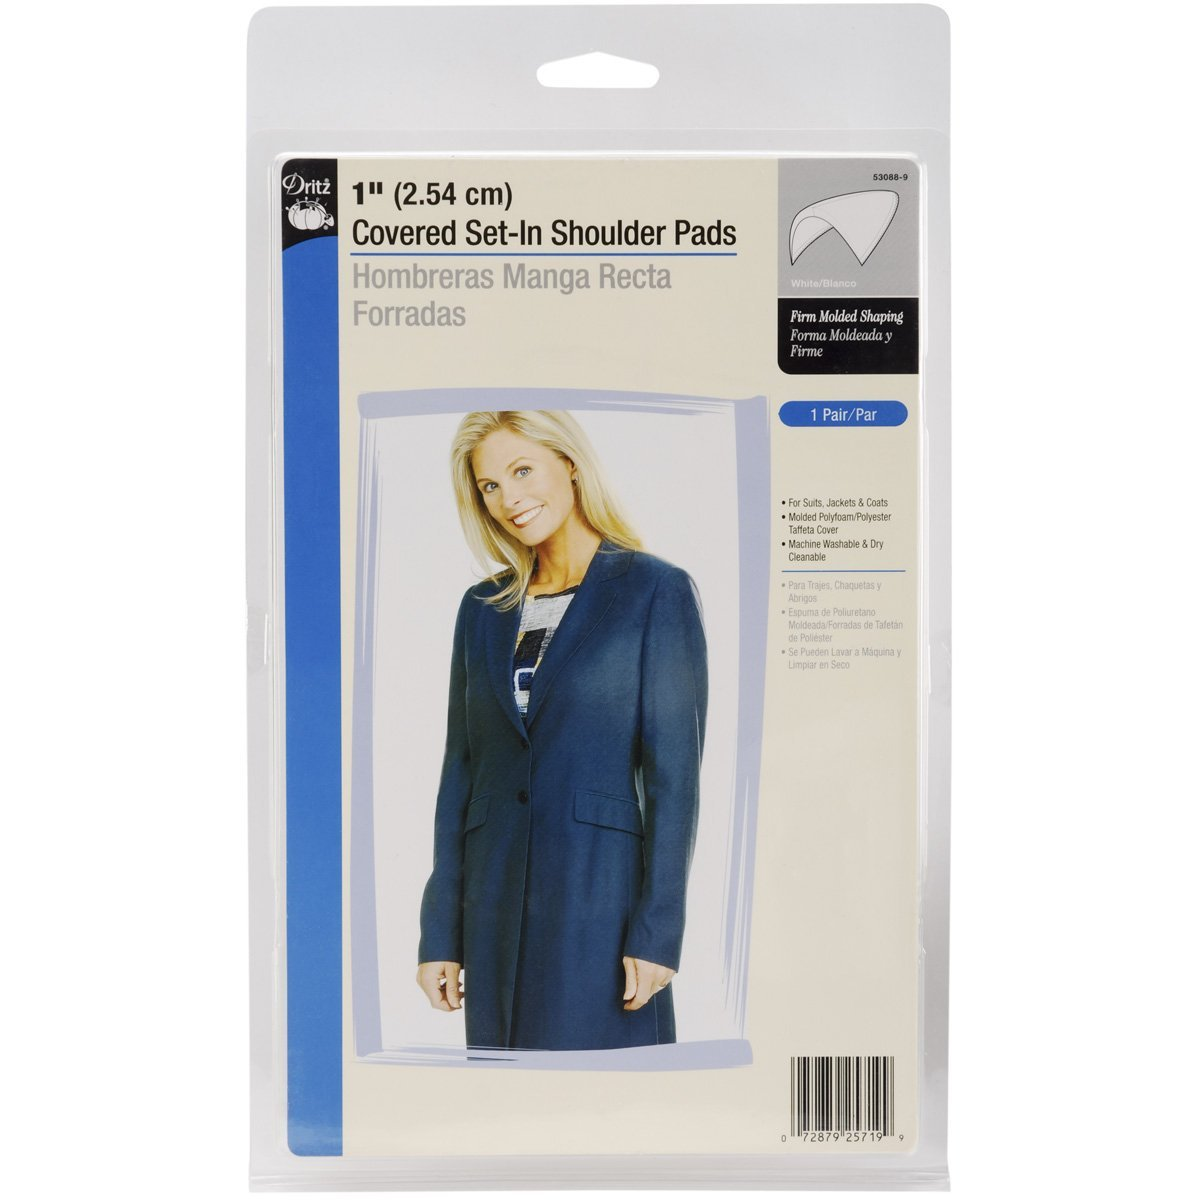 Amazon.com: Dritz 53070 Shoulder Pads, Covered Set-In, 1/4-Inch 1/4